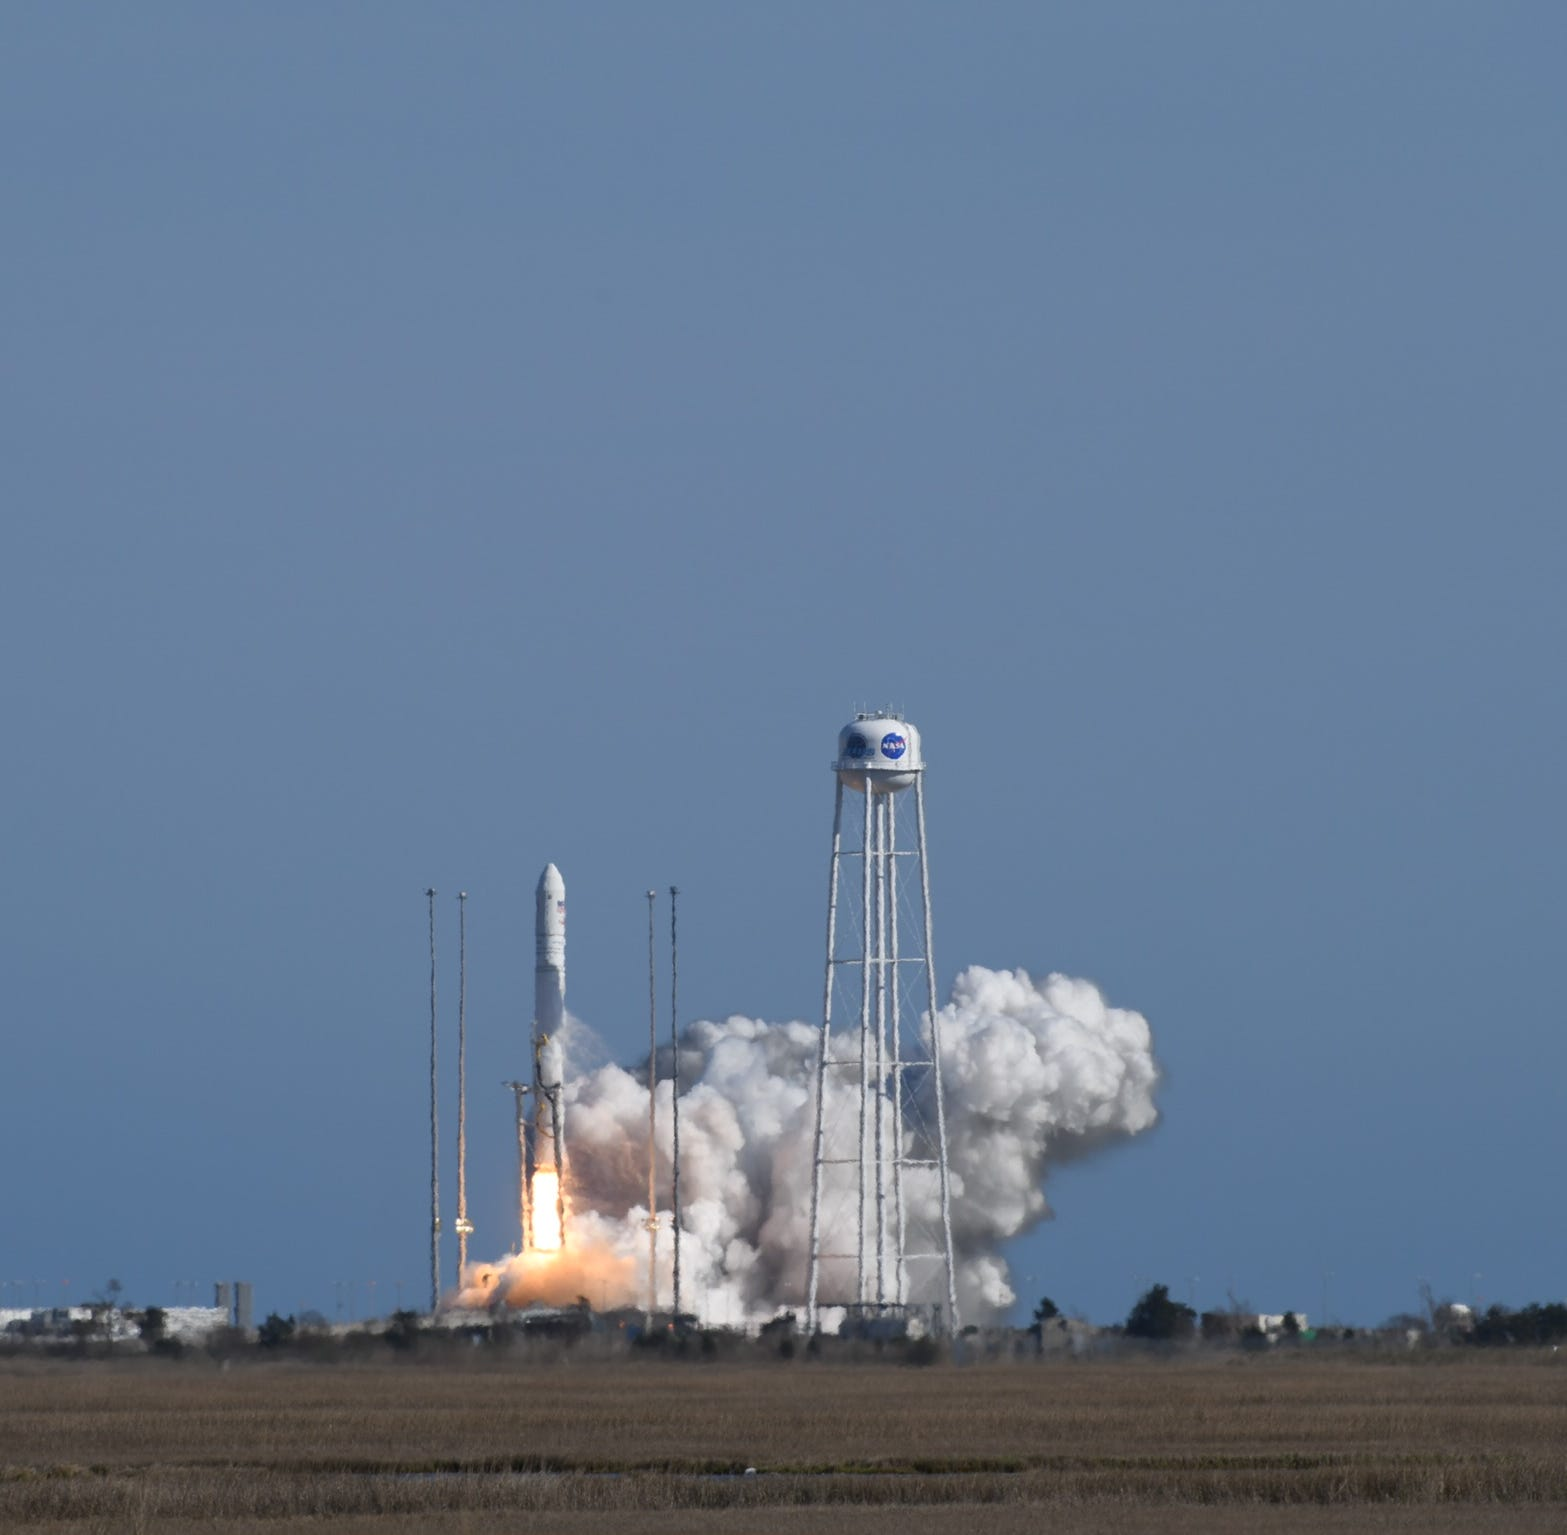 Crowds mob successful daytime rocket launch from NASA Wallops